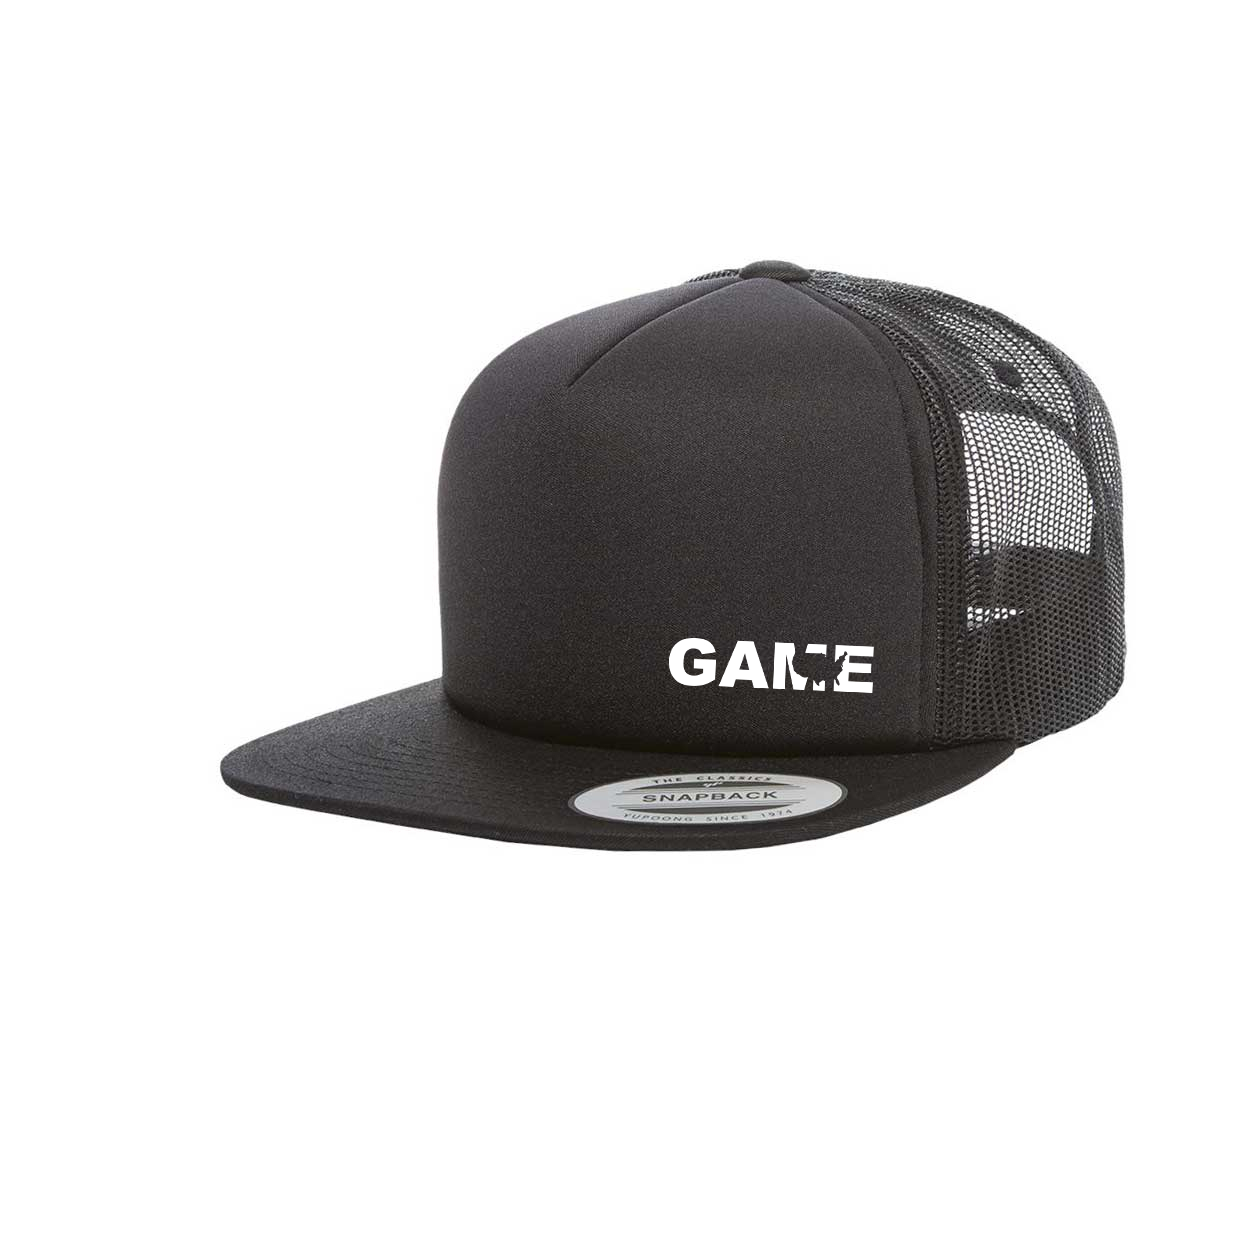 Game United States Night Out Premium Foam Flat Brim Snapback Hat Black (White Logo)